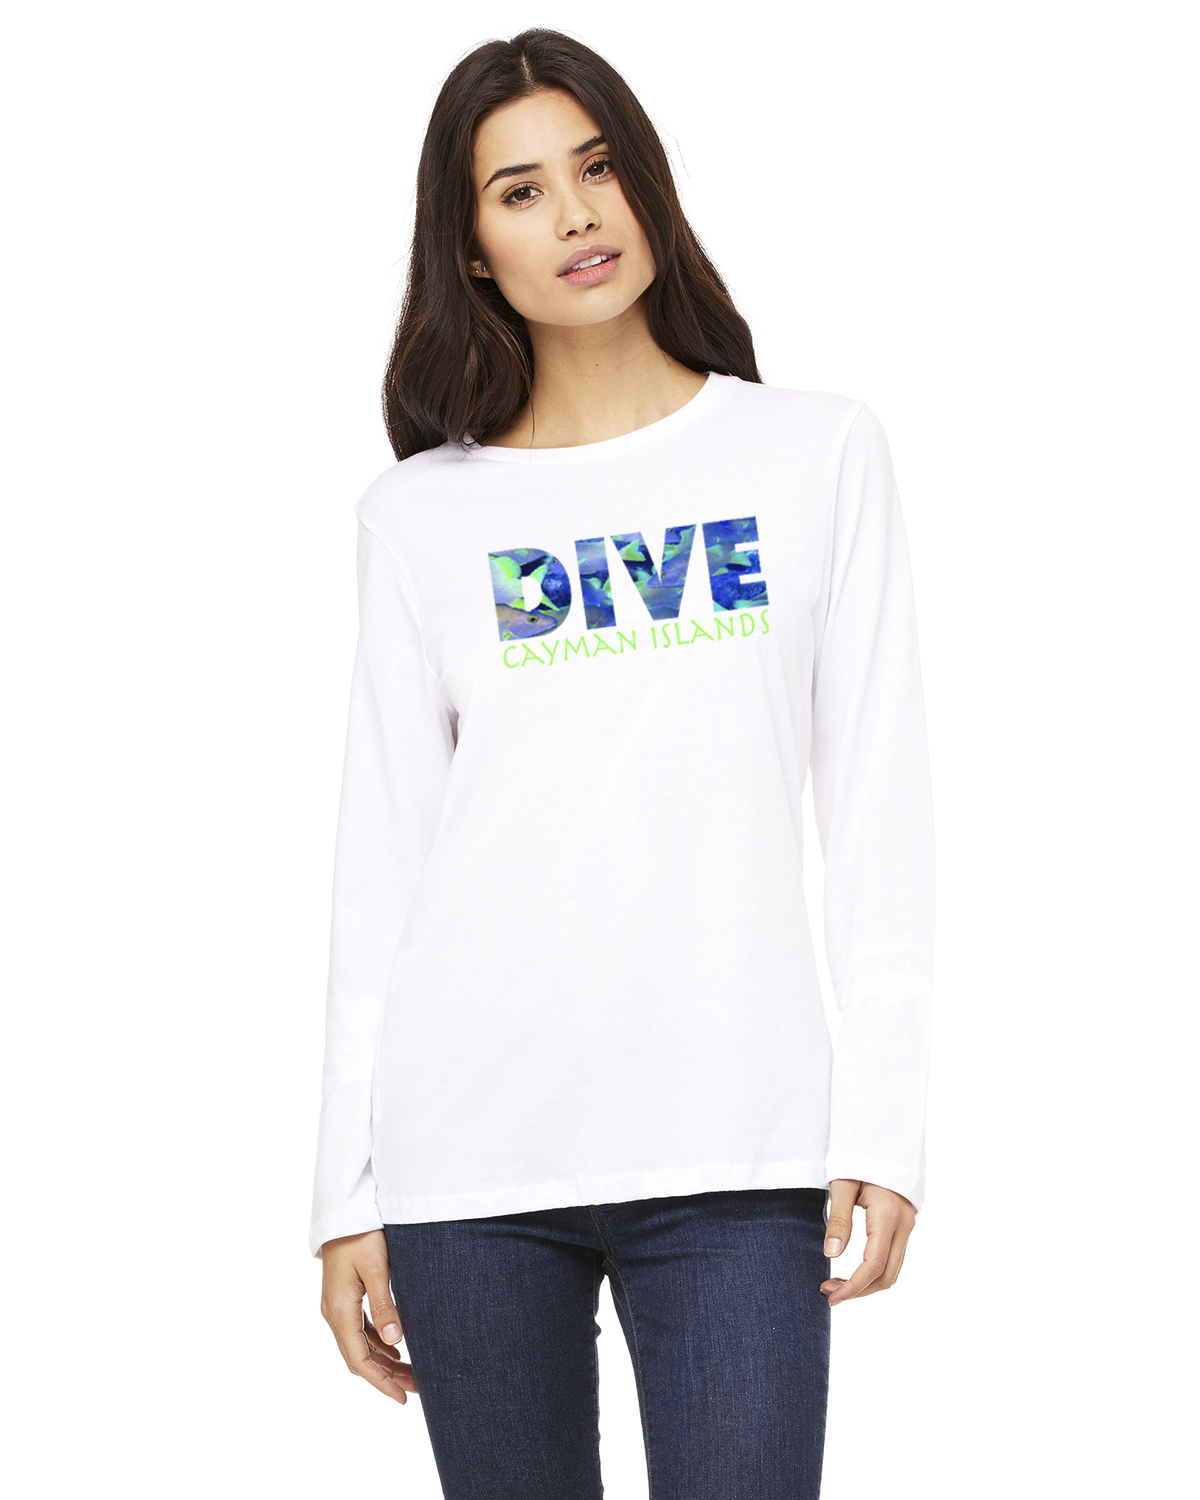 Women's Long Sleeve DIVE Cayman Islands T-Shirt (White)